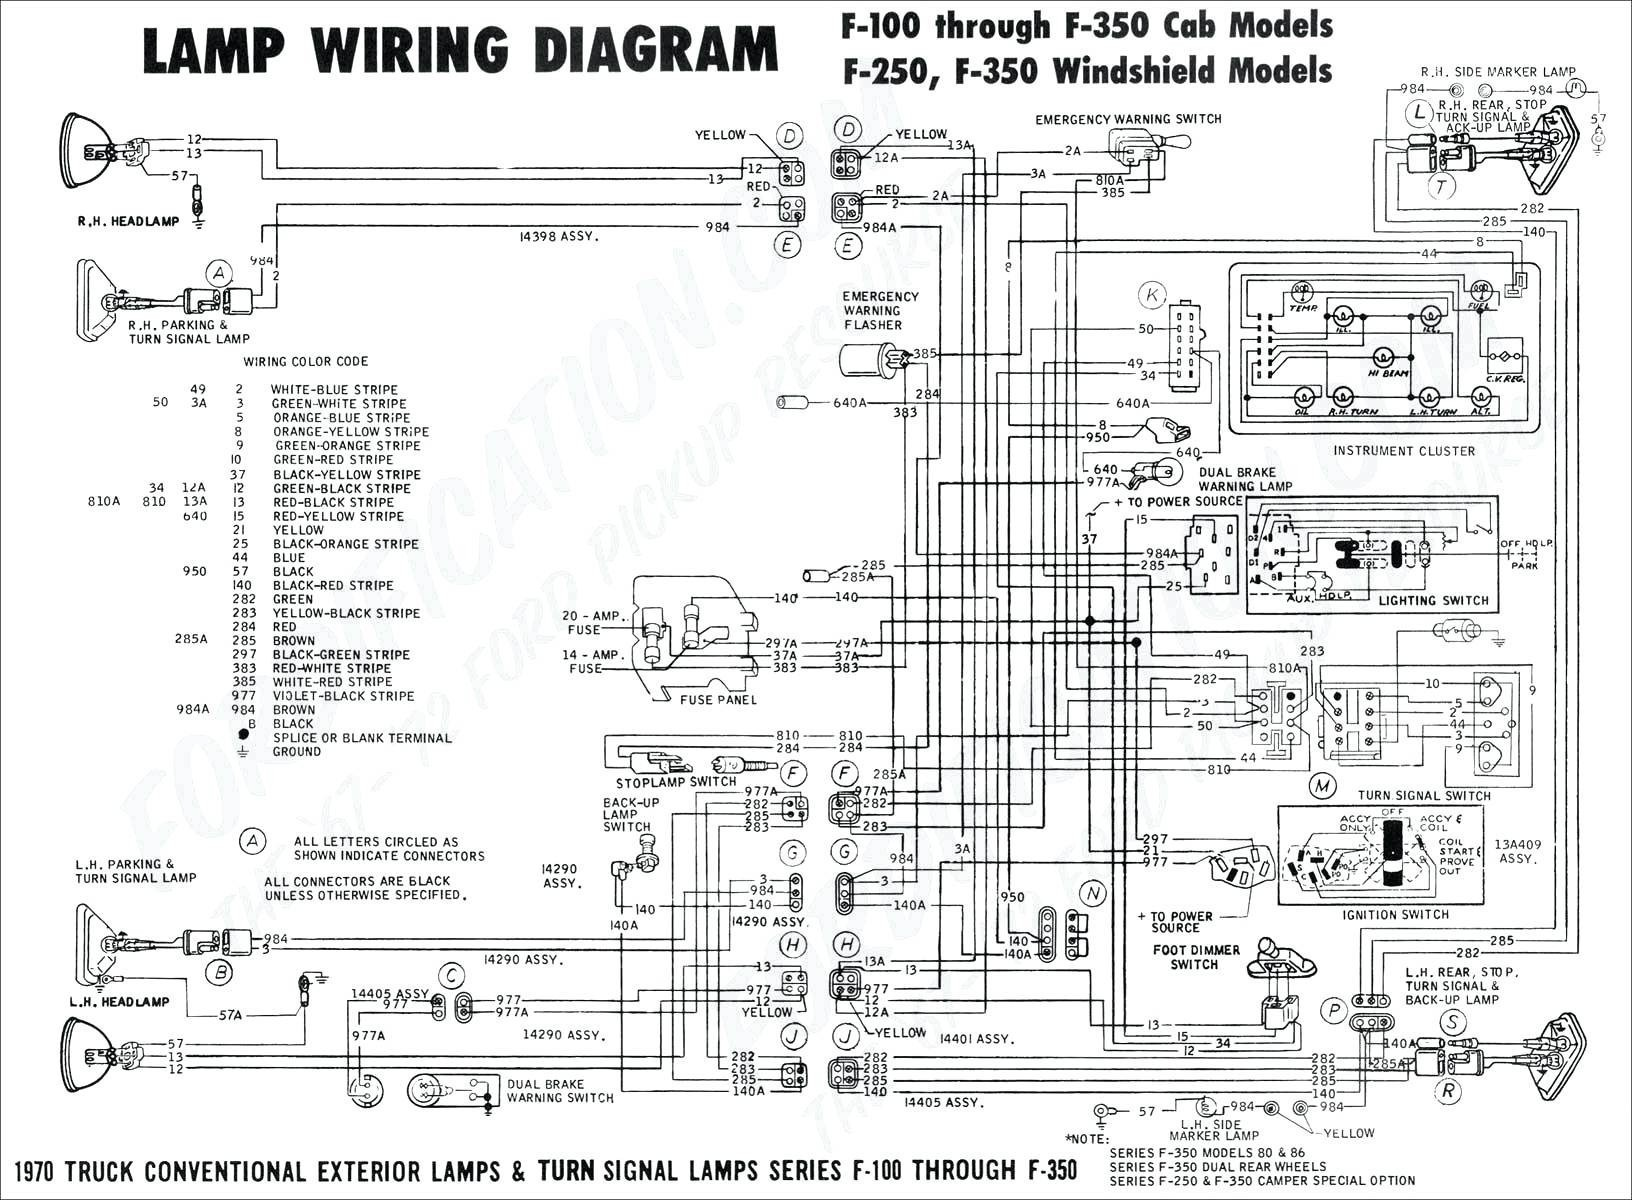 2001 Dodge Ram Engine Diagram Ram 2500 Engine Diagram Wiring Diagram toolbox Of 2001 Dodge Ram Engine Diagram 96 Ram 1500 Engine Diagram Wiring Diagram Paper